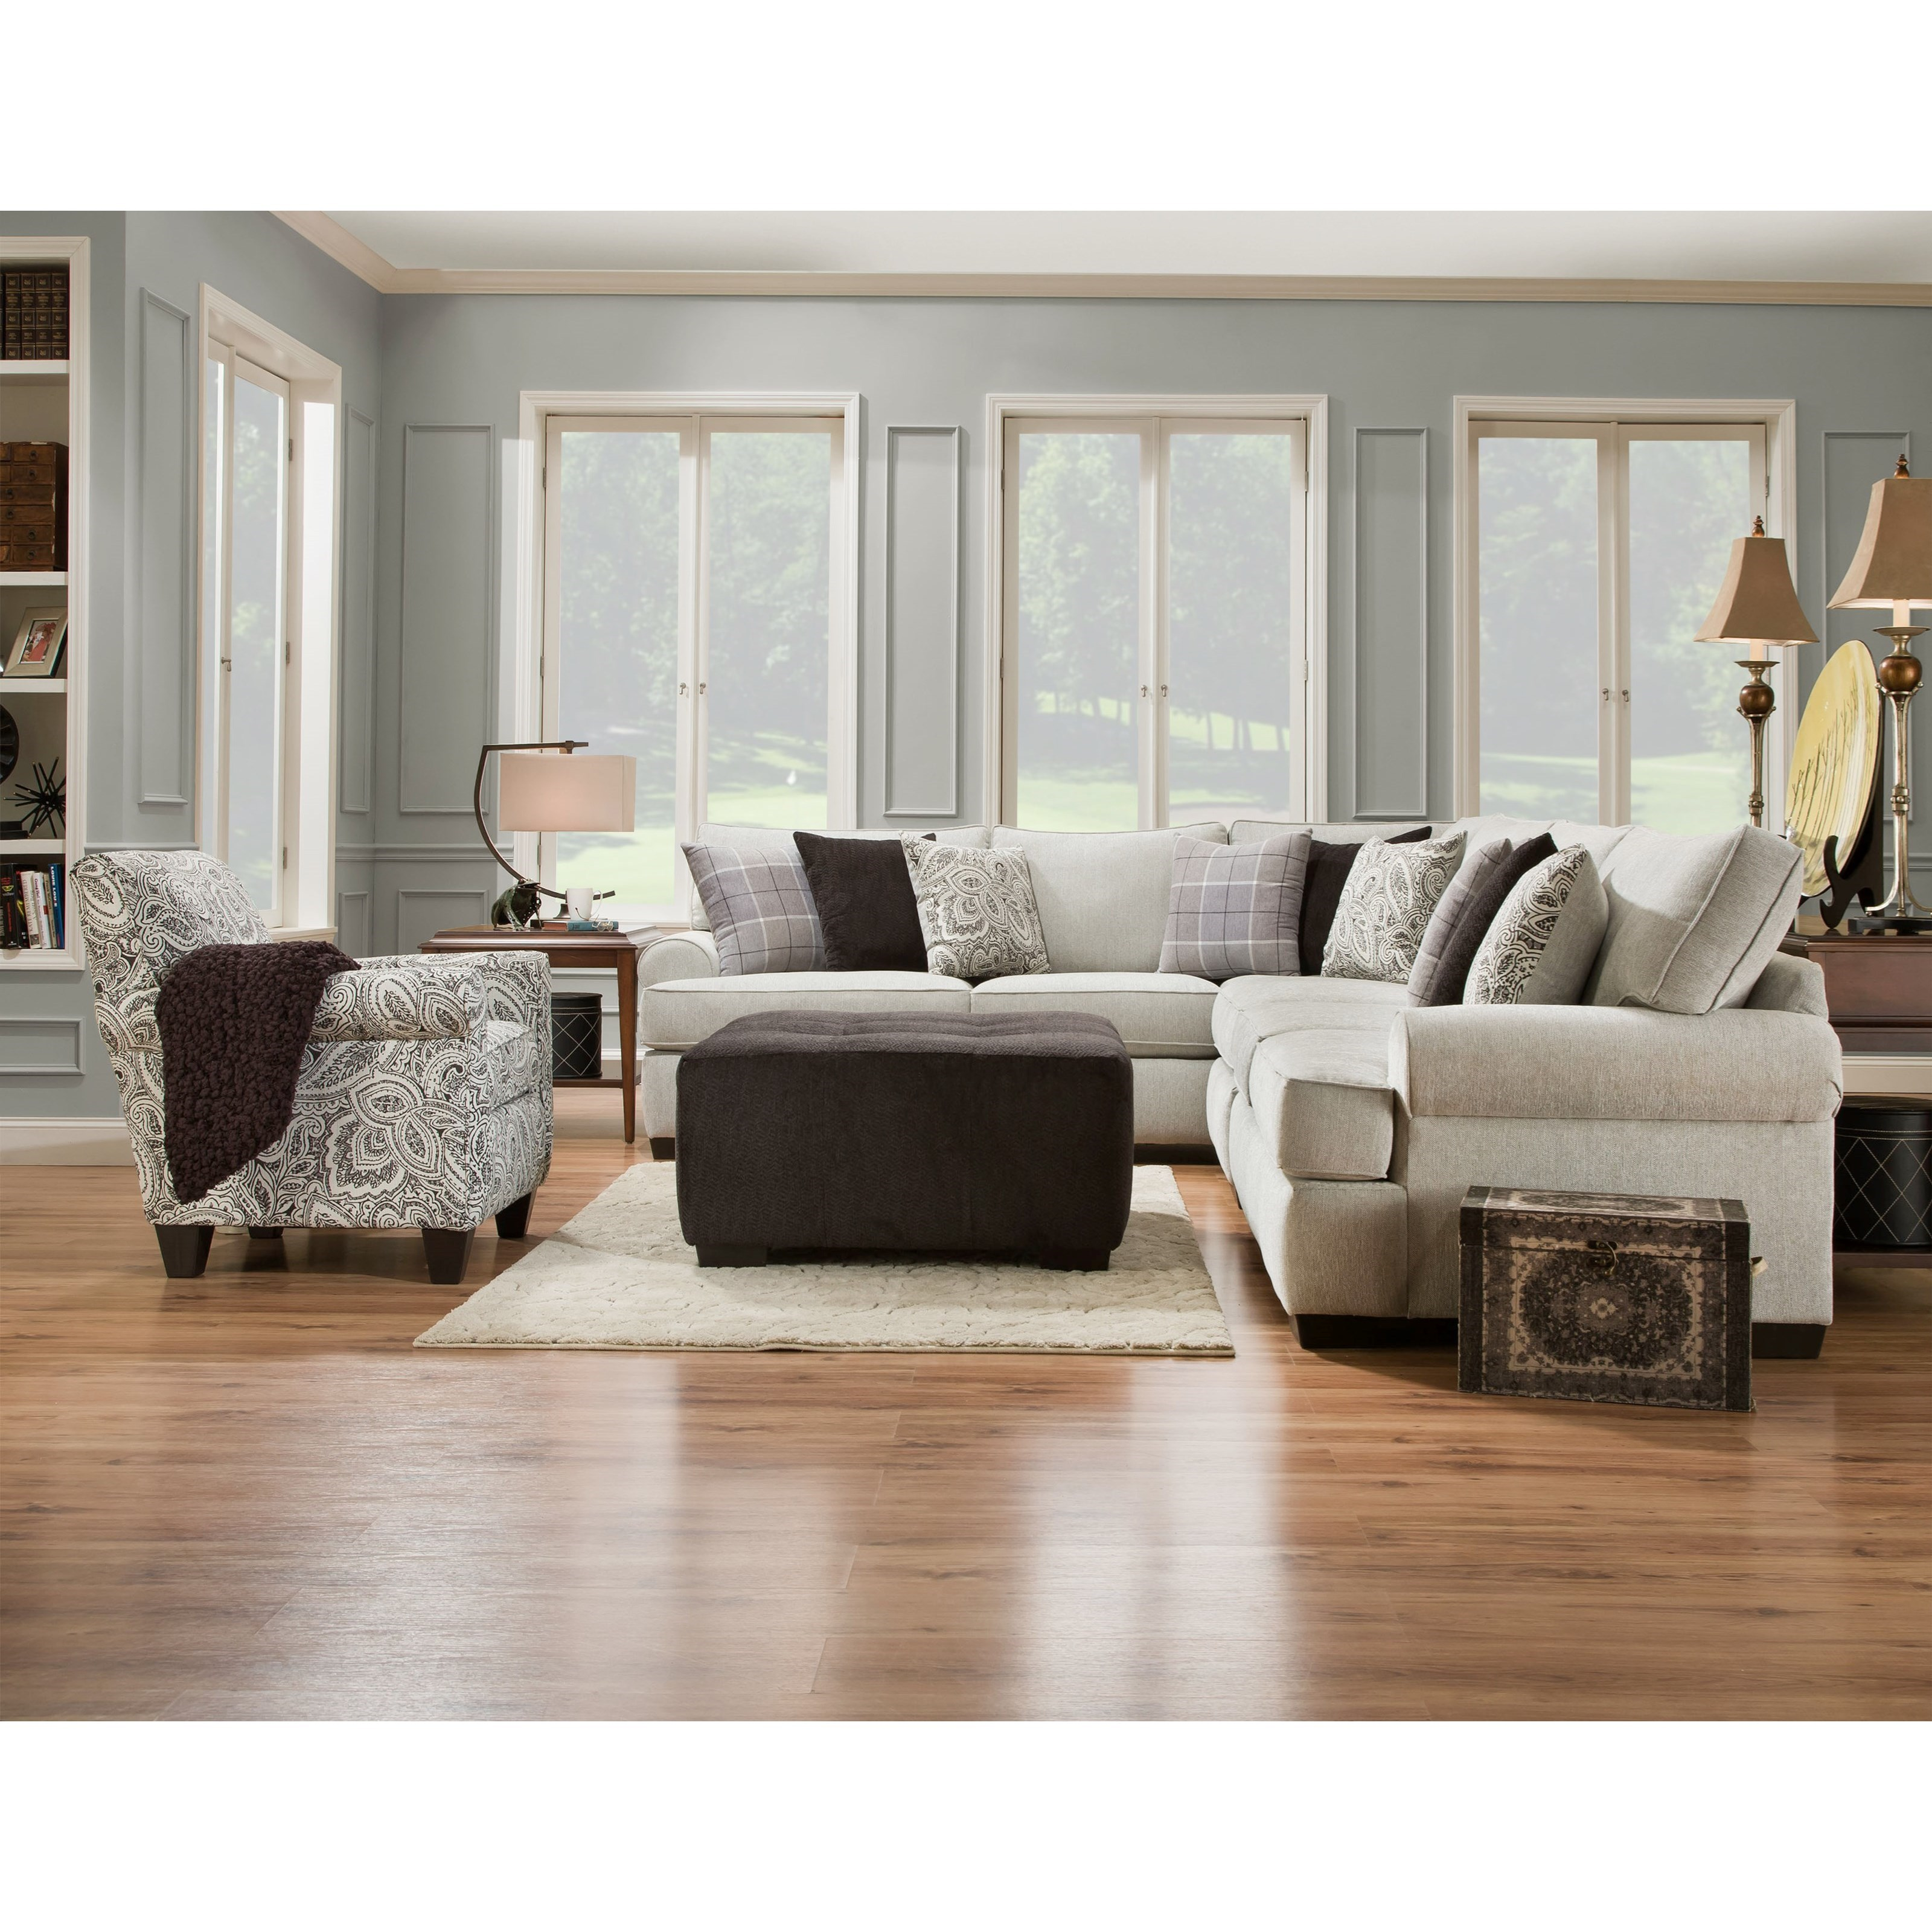 Corinthian 5300 Traditional Styled Sectional Sofa With: Corinthian 5900 5-Seat Sectional Sofa